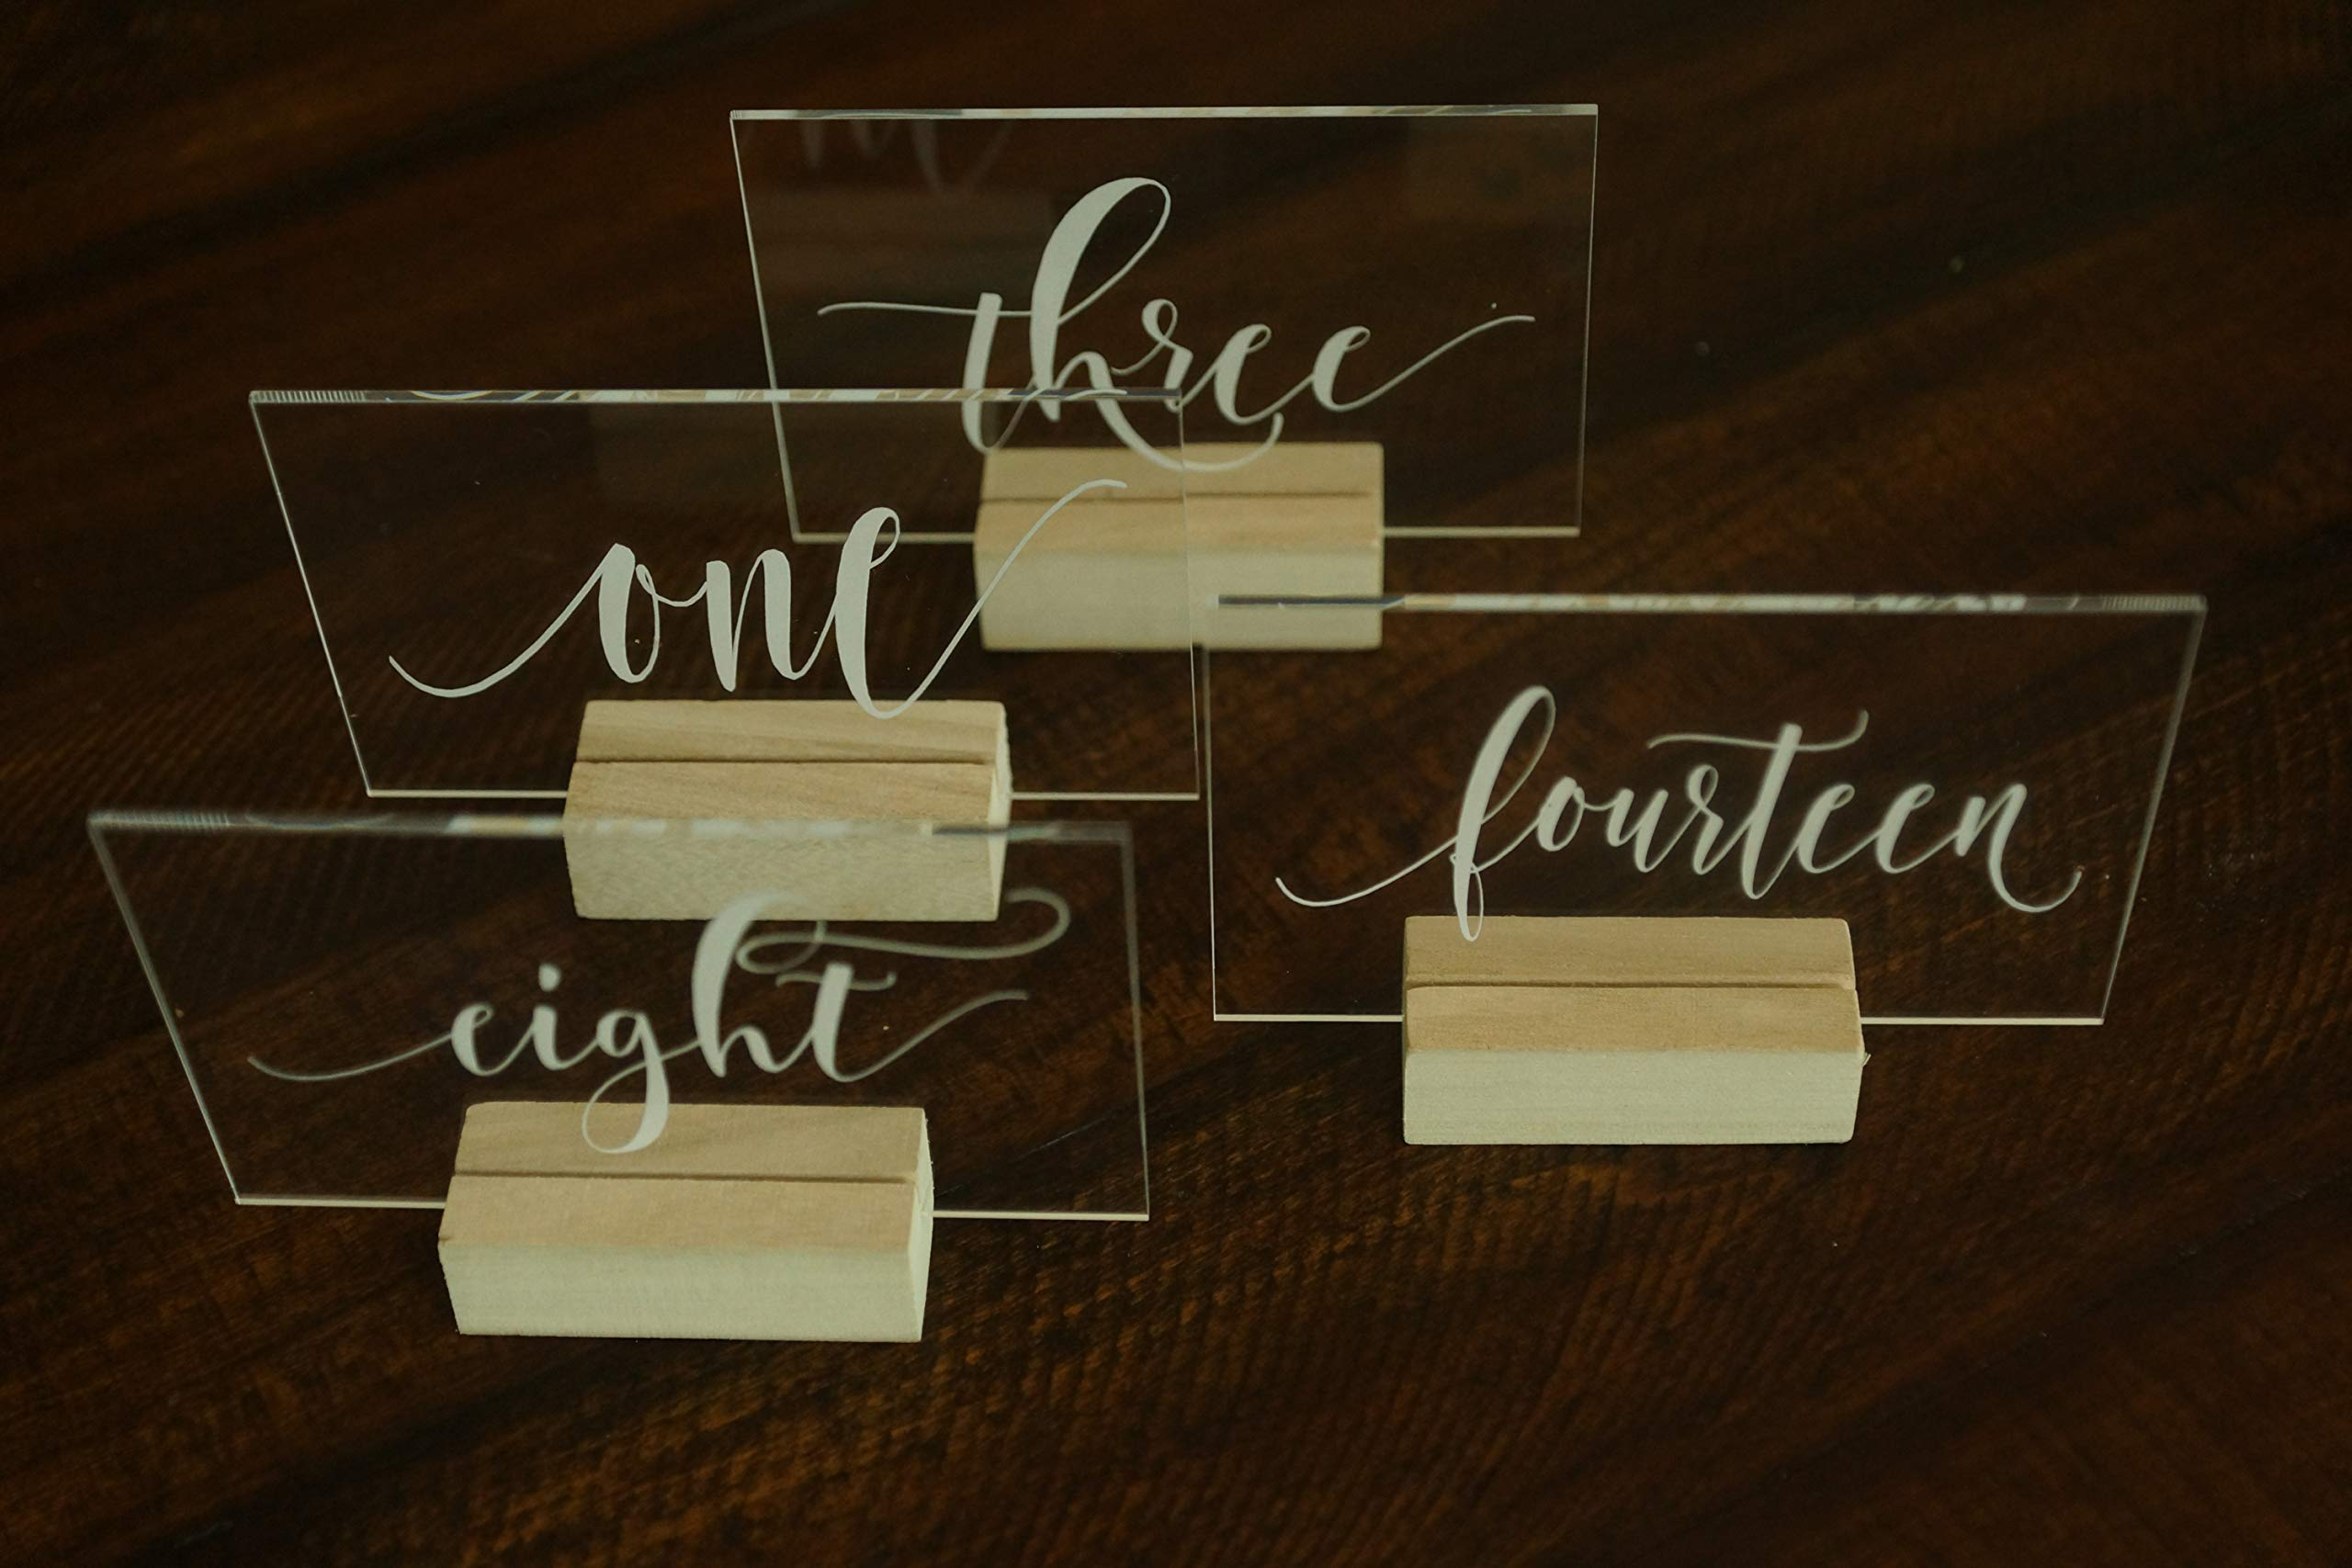 Set of 20 Acrylic Calligraphy Table Numbers   Wedding Event Shower Reception Restaurant   Glass like Clear Modern Formal Elegant Vintage Rustic   Sign Placard Card   Lettering Script Handwriting Print by Generic (Image #6)